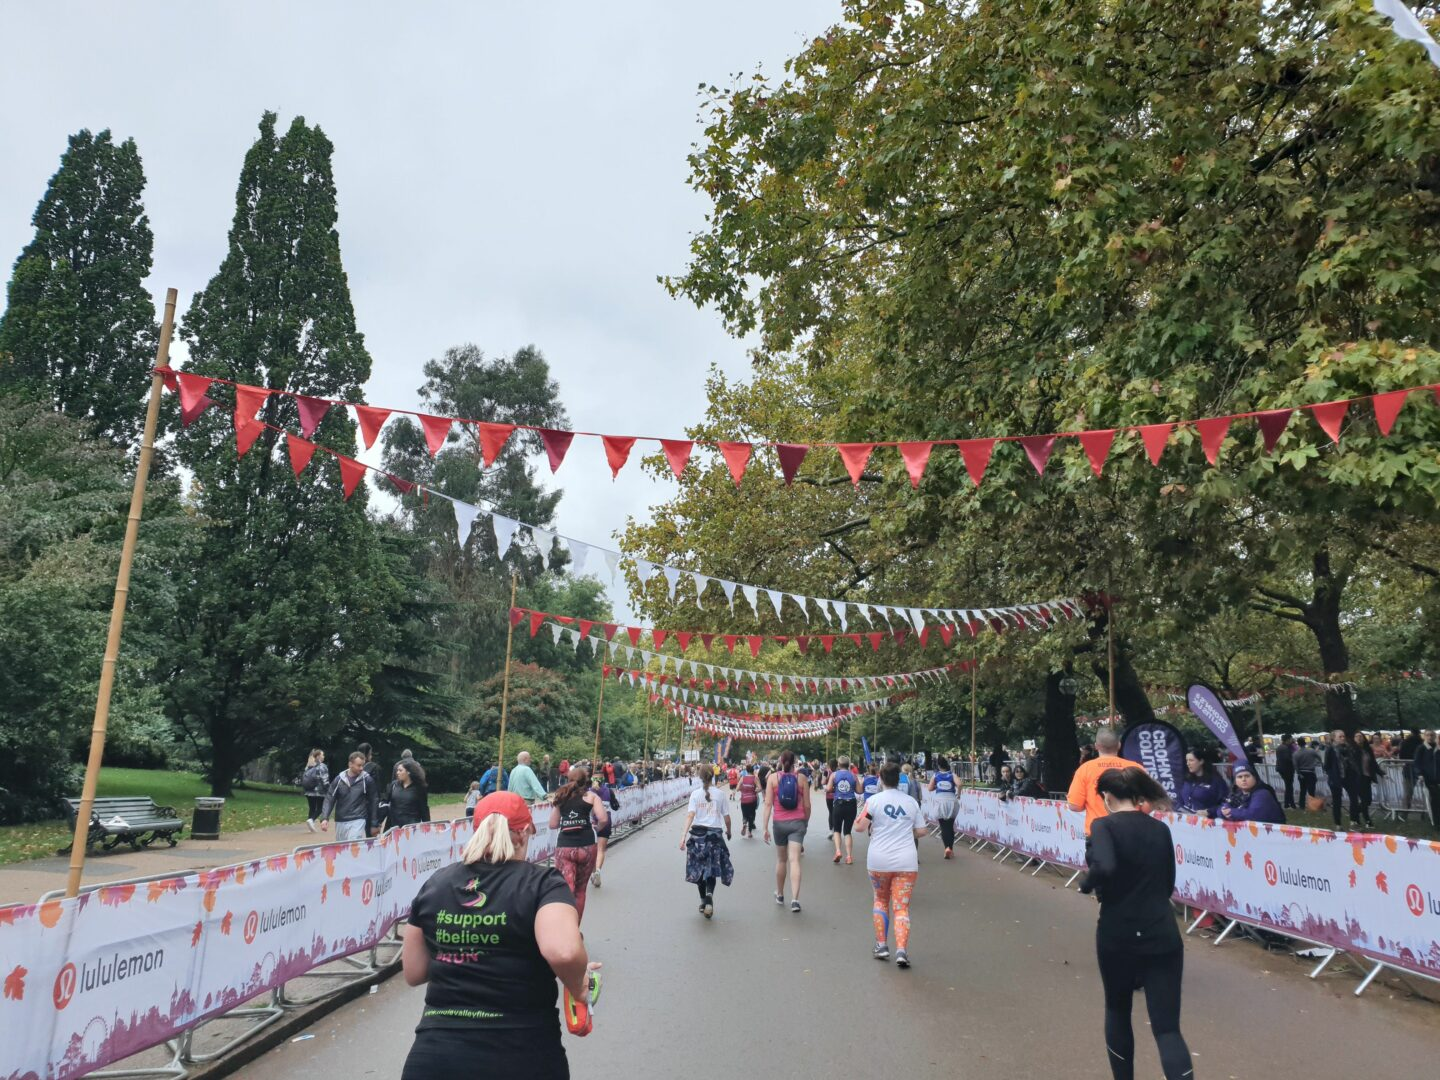 Flags lining the route through Hyde Park